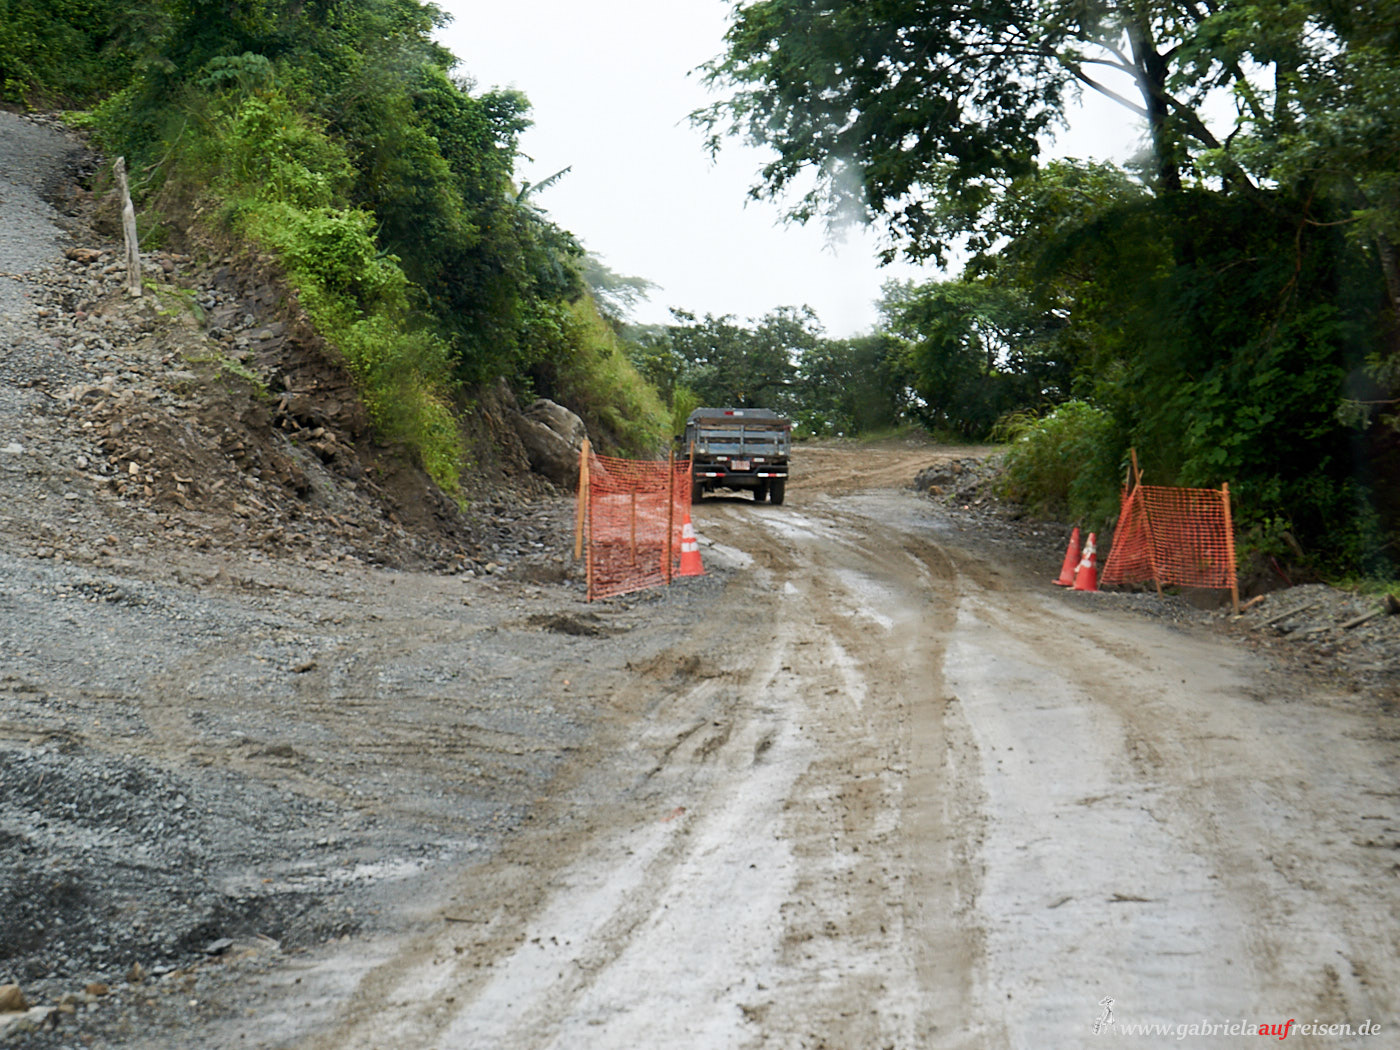 overland streets in Costa Rica